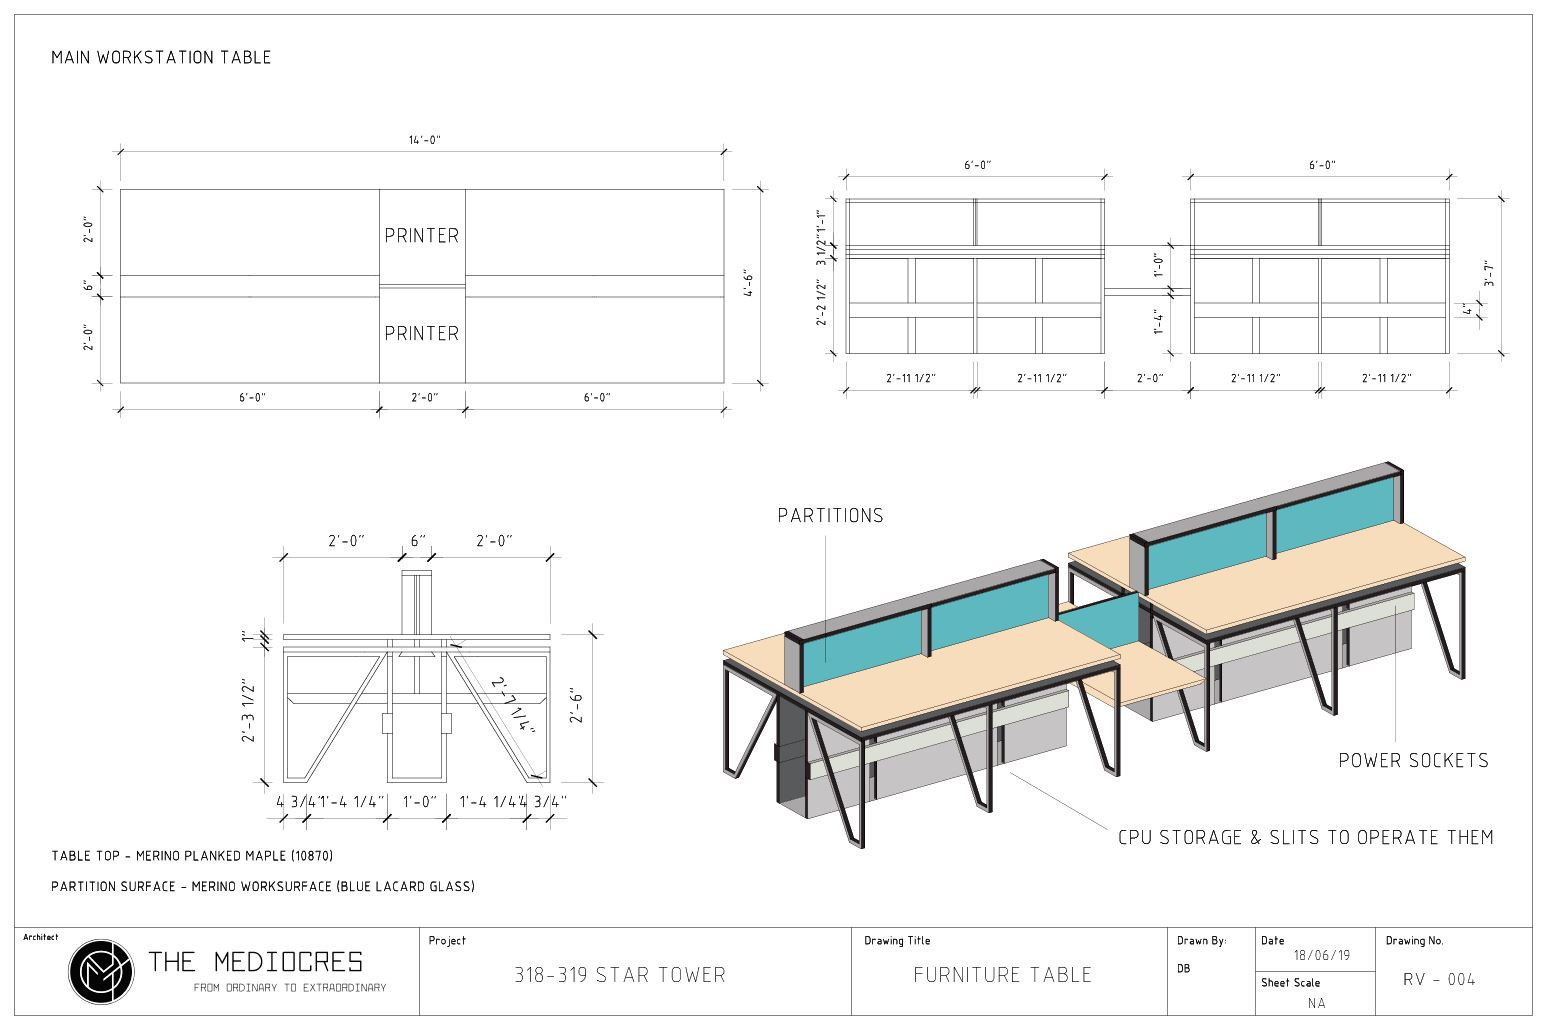 WORKSTATION TABLE DWG